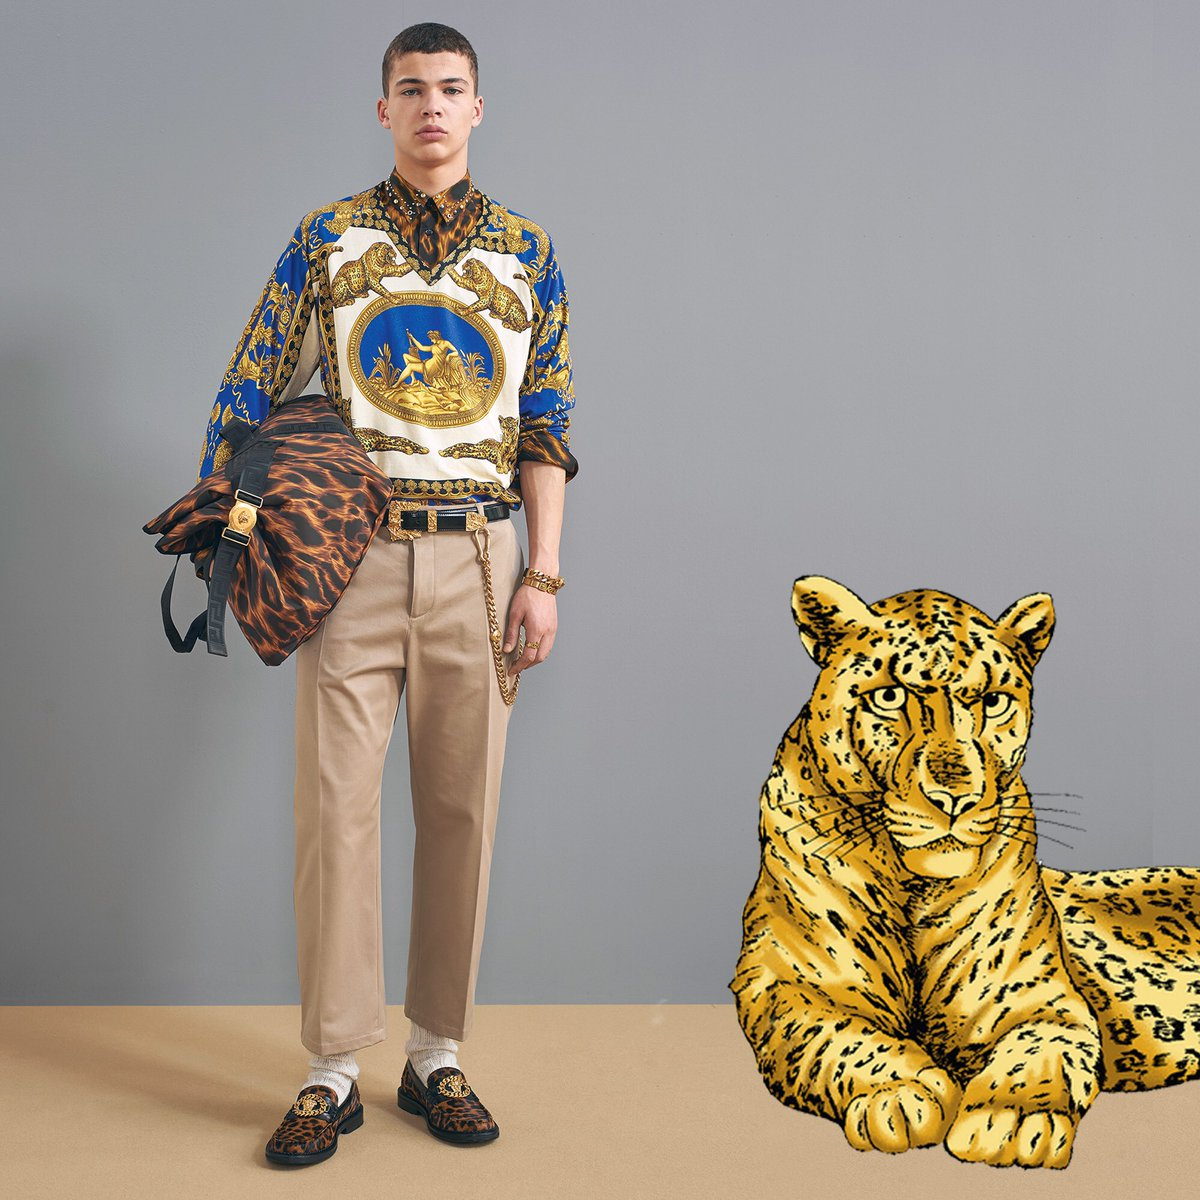 Roaring in maximalism, always.  Find the new #VersacePreFall18 prints for him now: https://t.co/NoSI7cBtKP